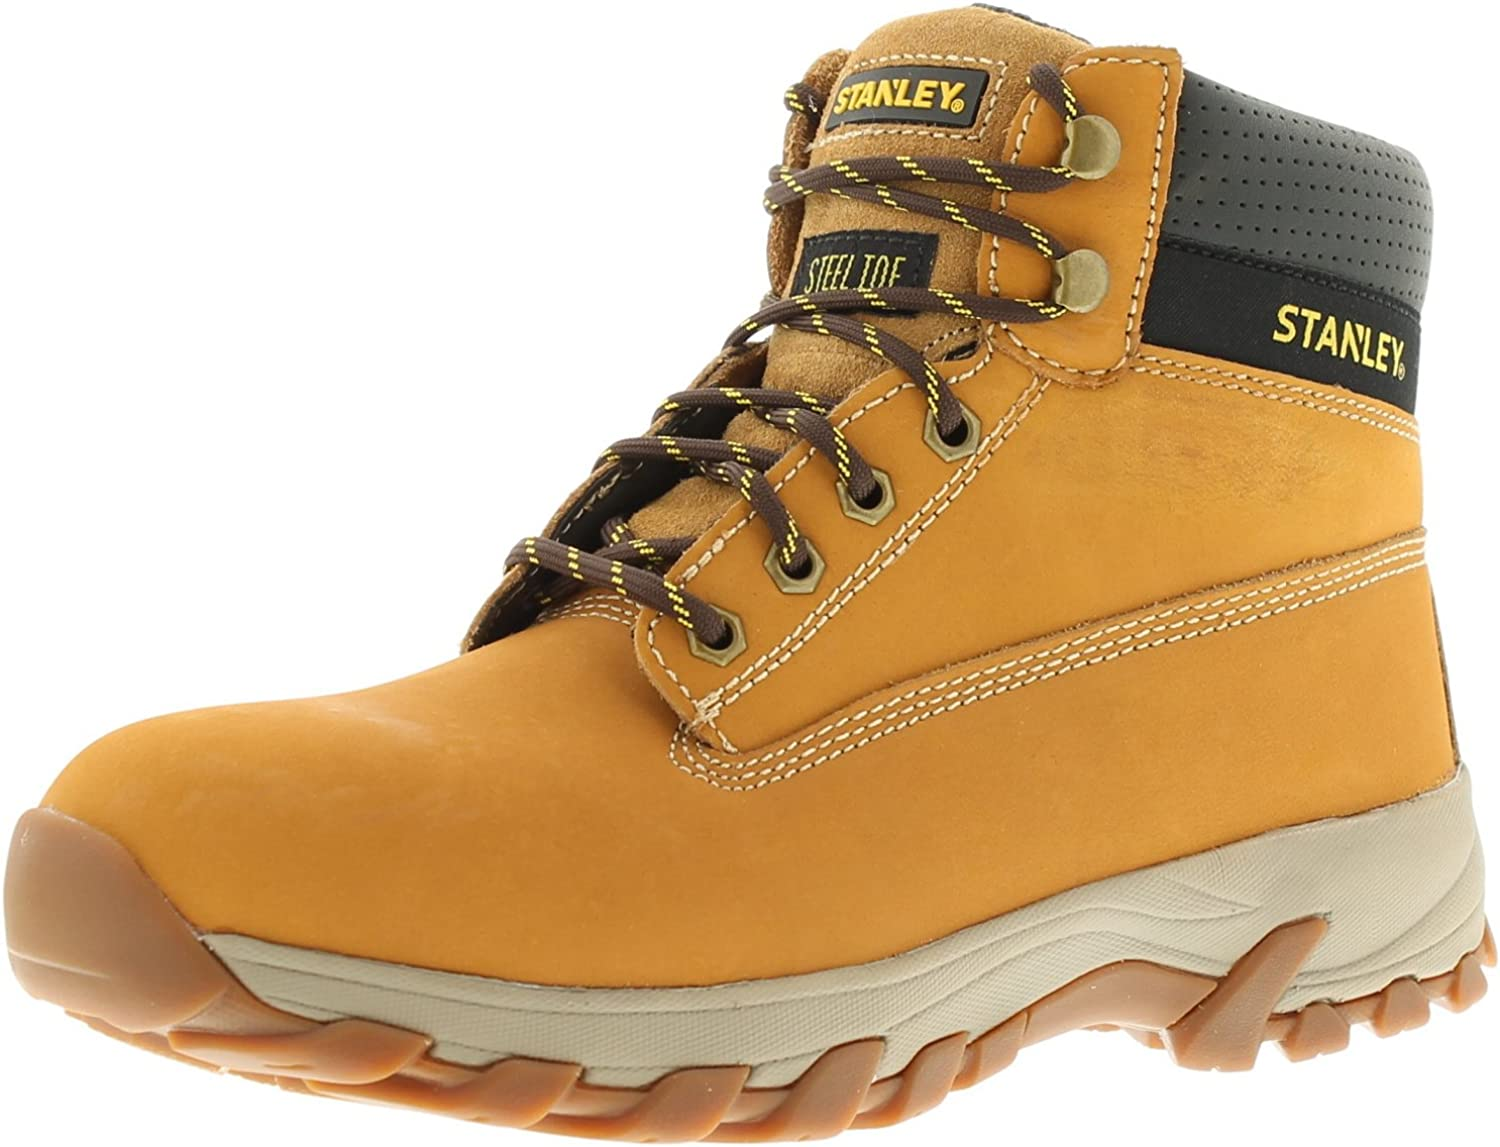 Stanley Hartford Mens Nubuck Leather Material Safety Boots Honey